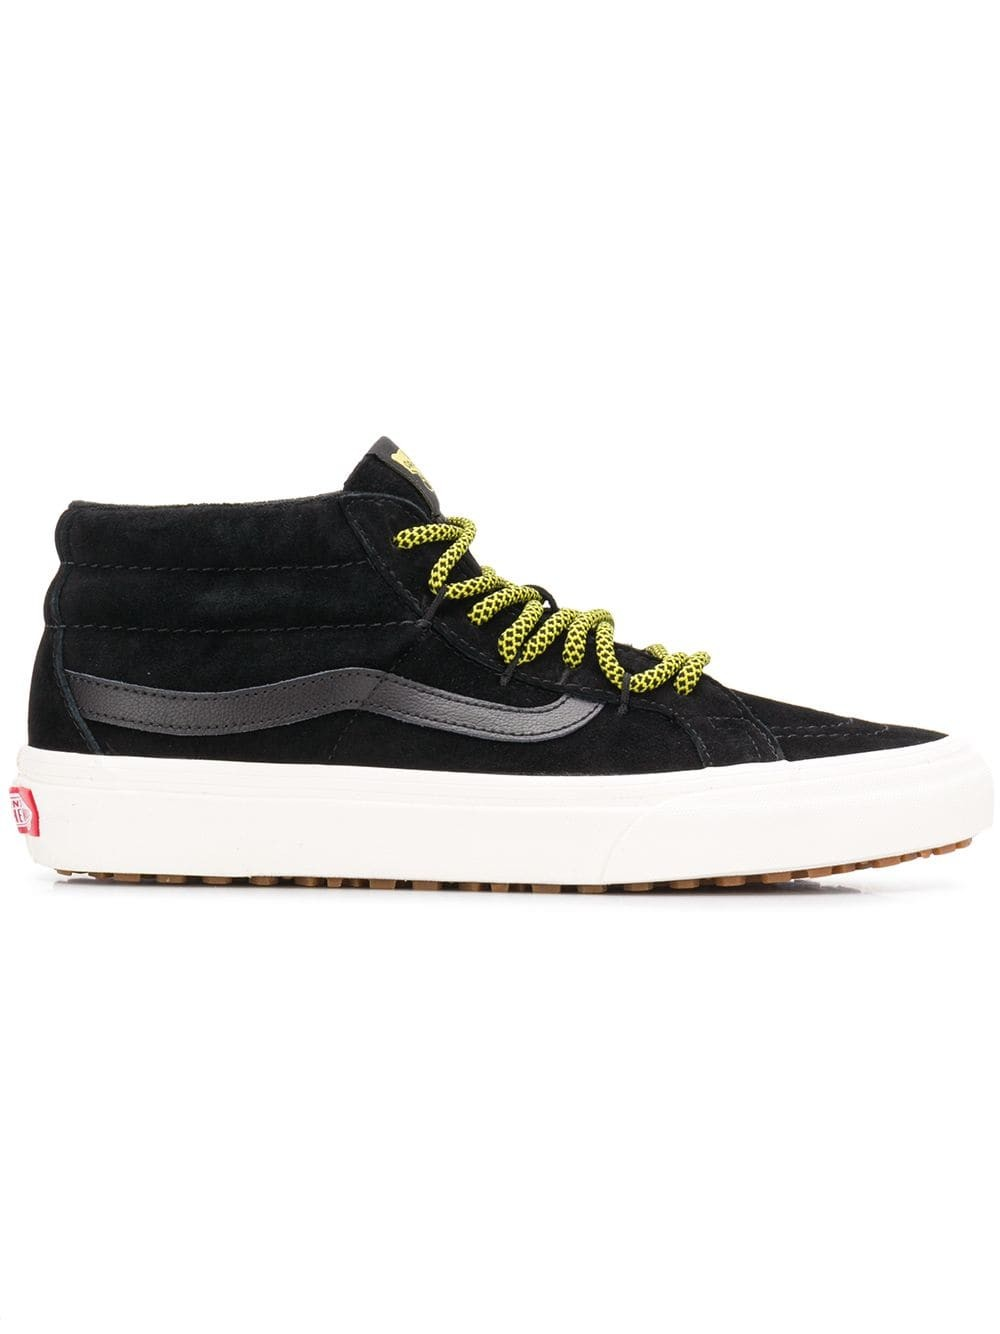 Vans New Sk8-Mid Reissue Ghillie MTE Vault Homme VN0A3TKQI28